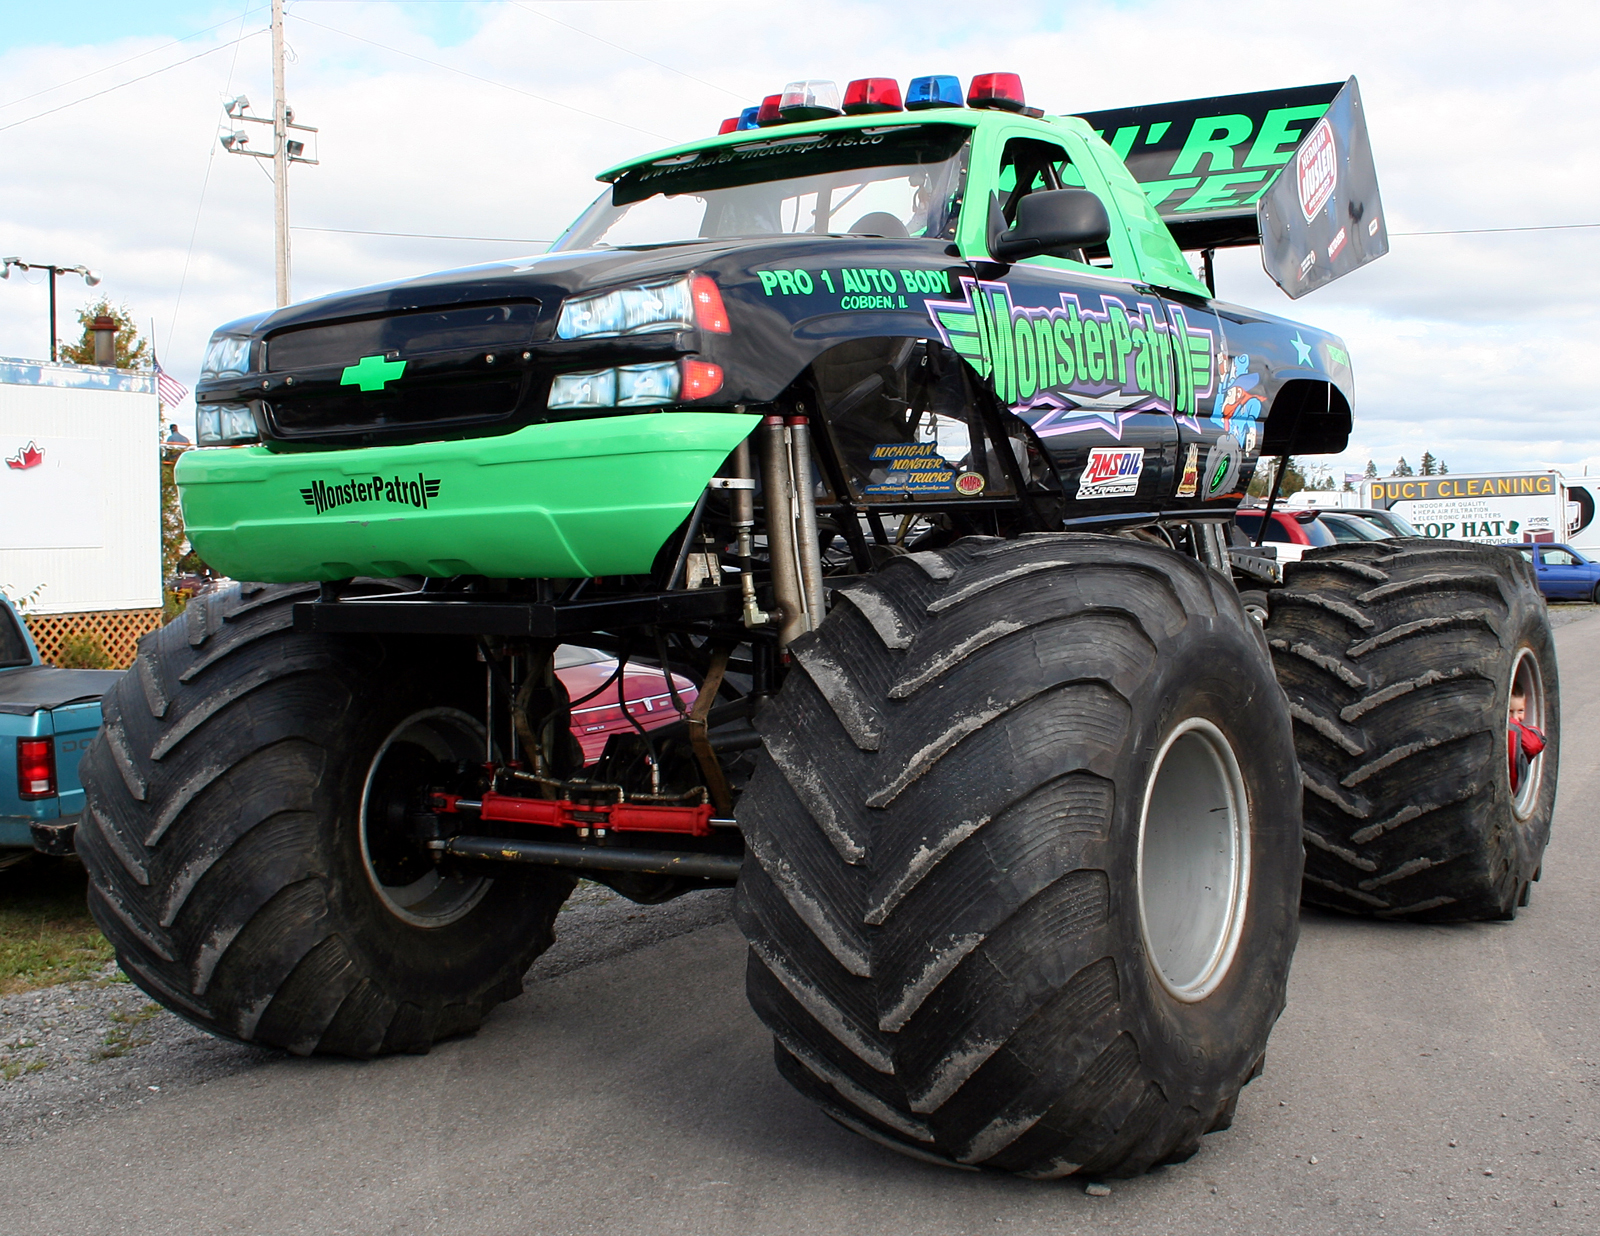 monster truck some amazing wallpapers images high definition all hd wallpapers. Black Bedroom Furniture Sets. Home Design Ideas